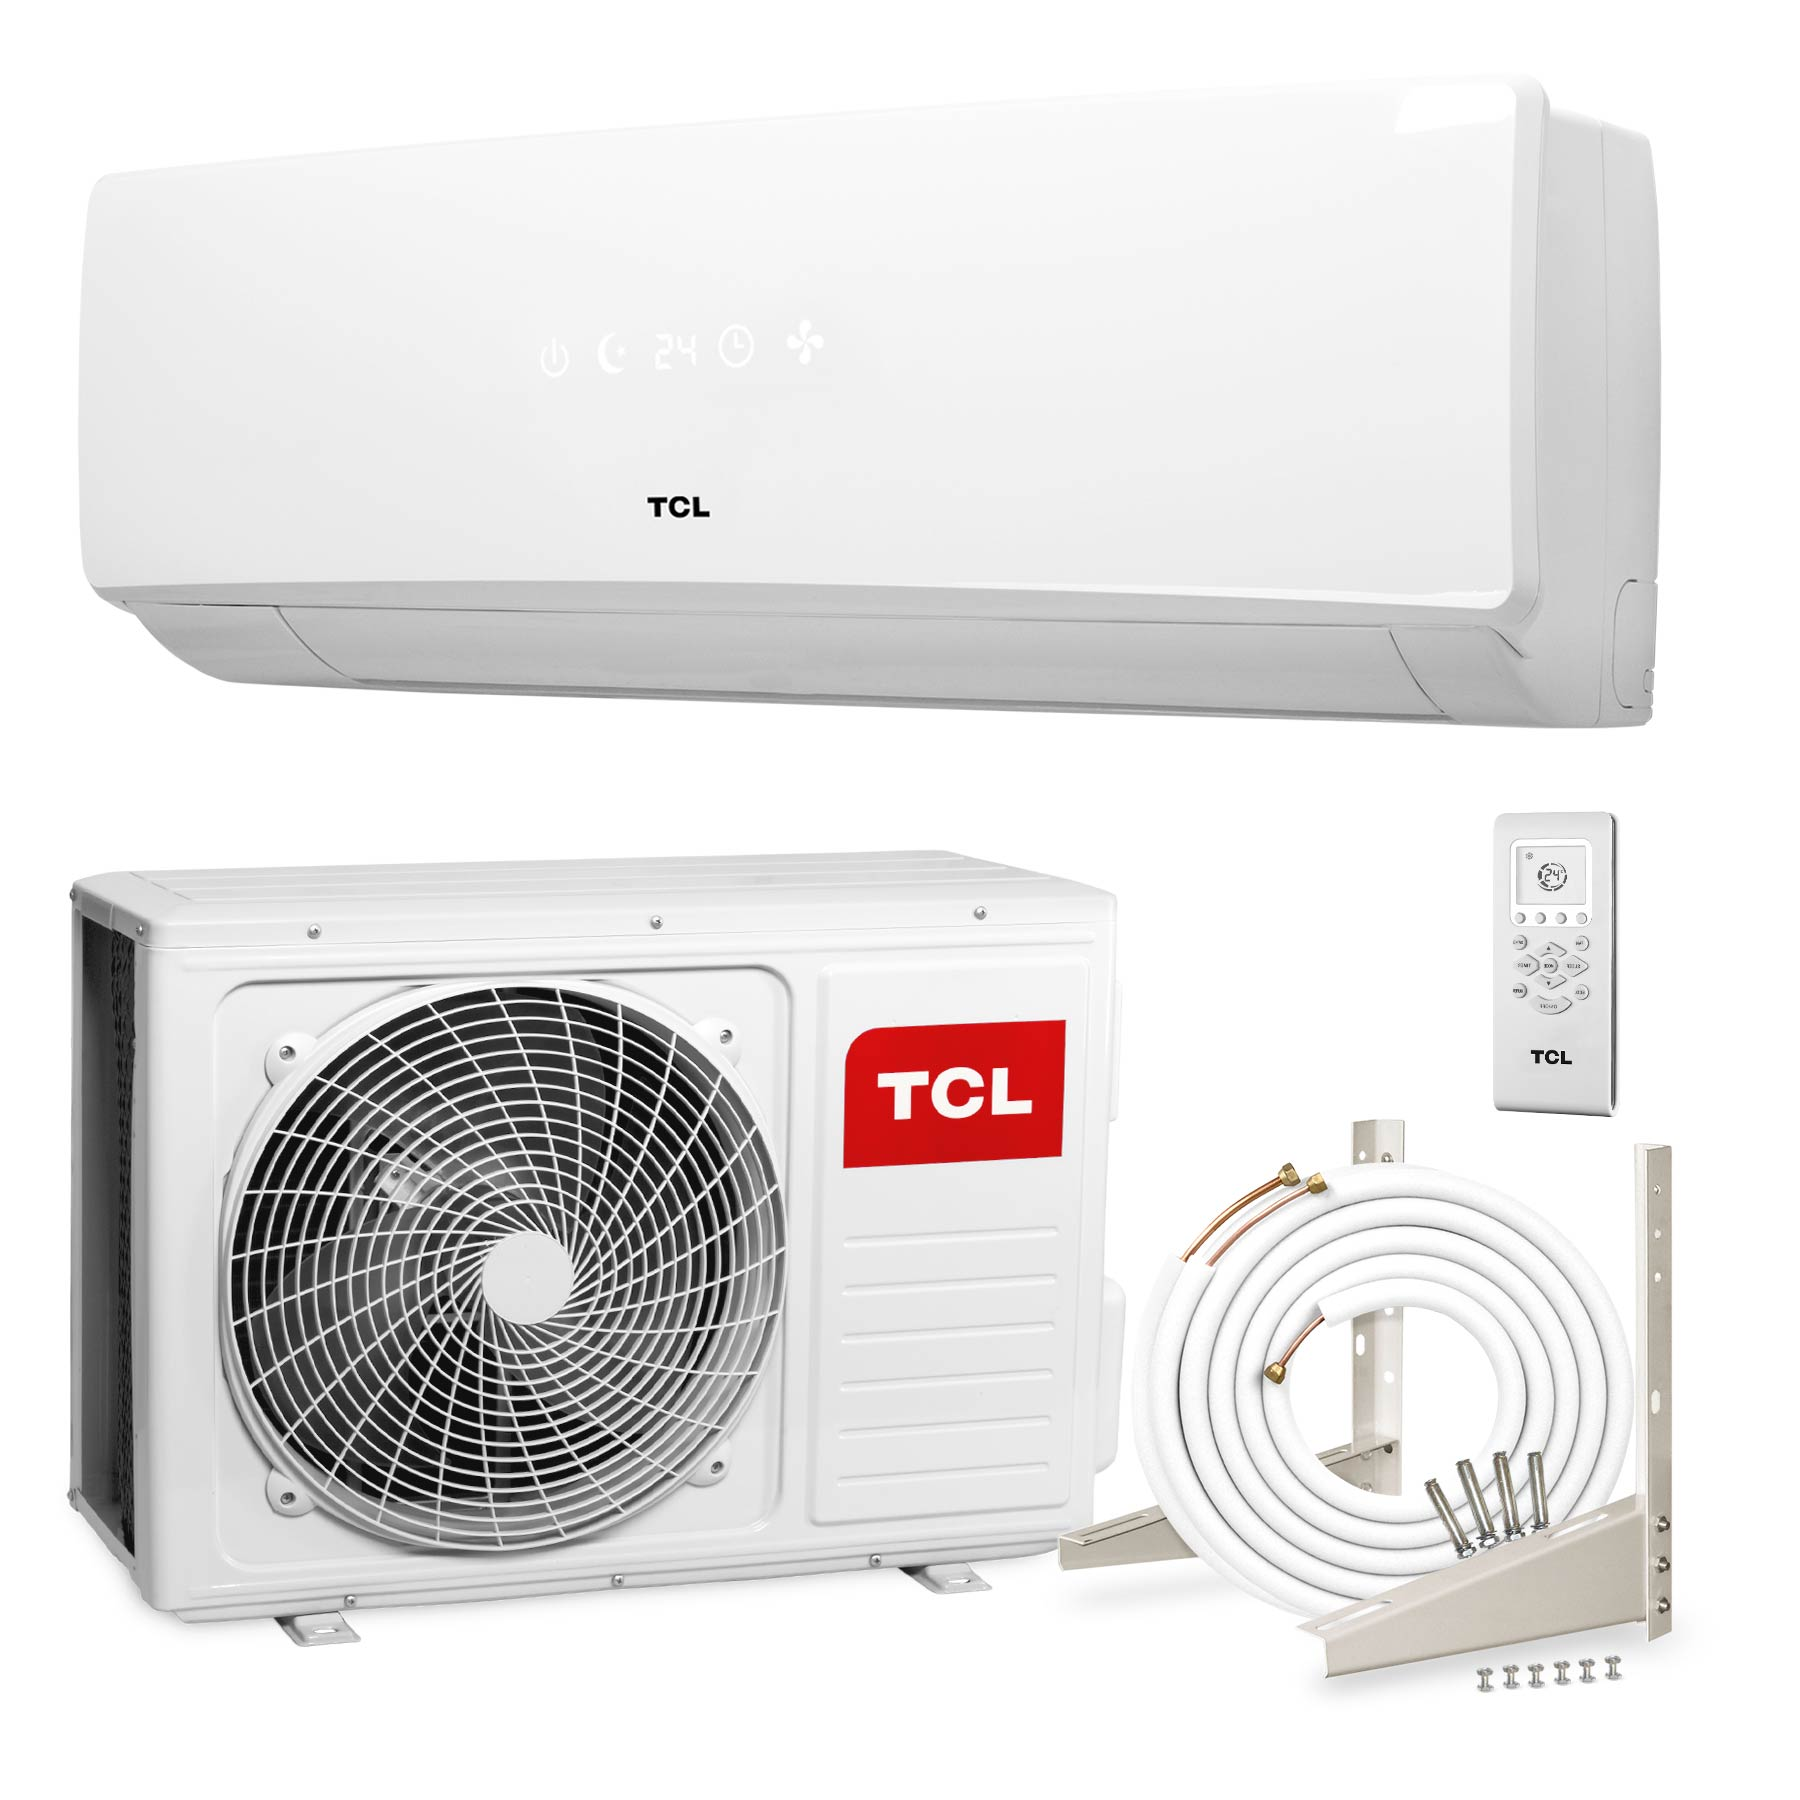 tcl inverter split klimaanlage 18000 btu 5 1kw klima klimager t baden w rttemberg. Black Bedroom Furniture Sets. Home Design Ideas